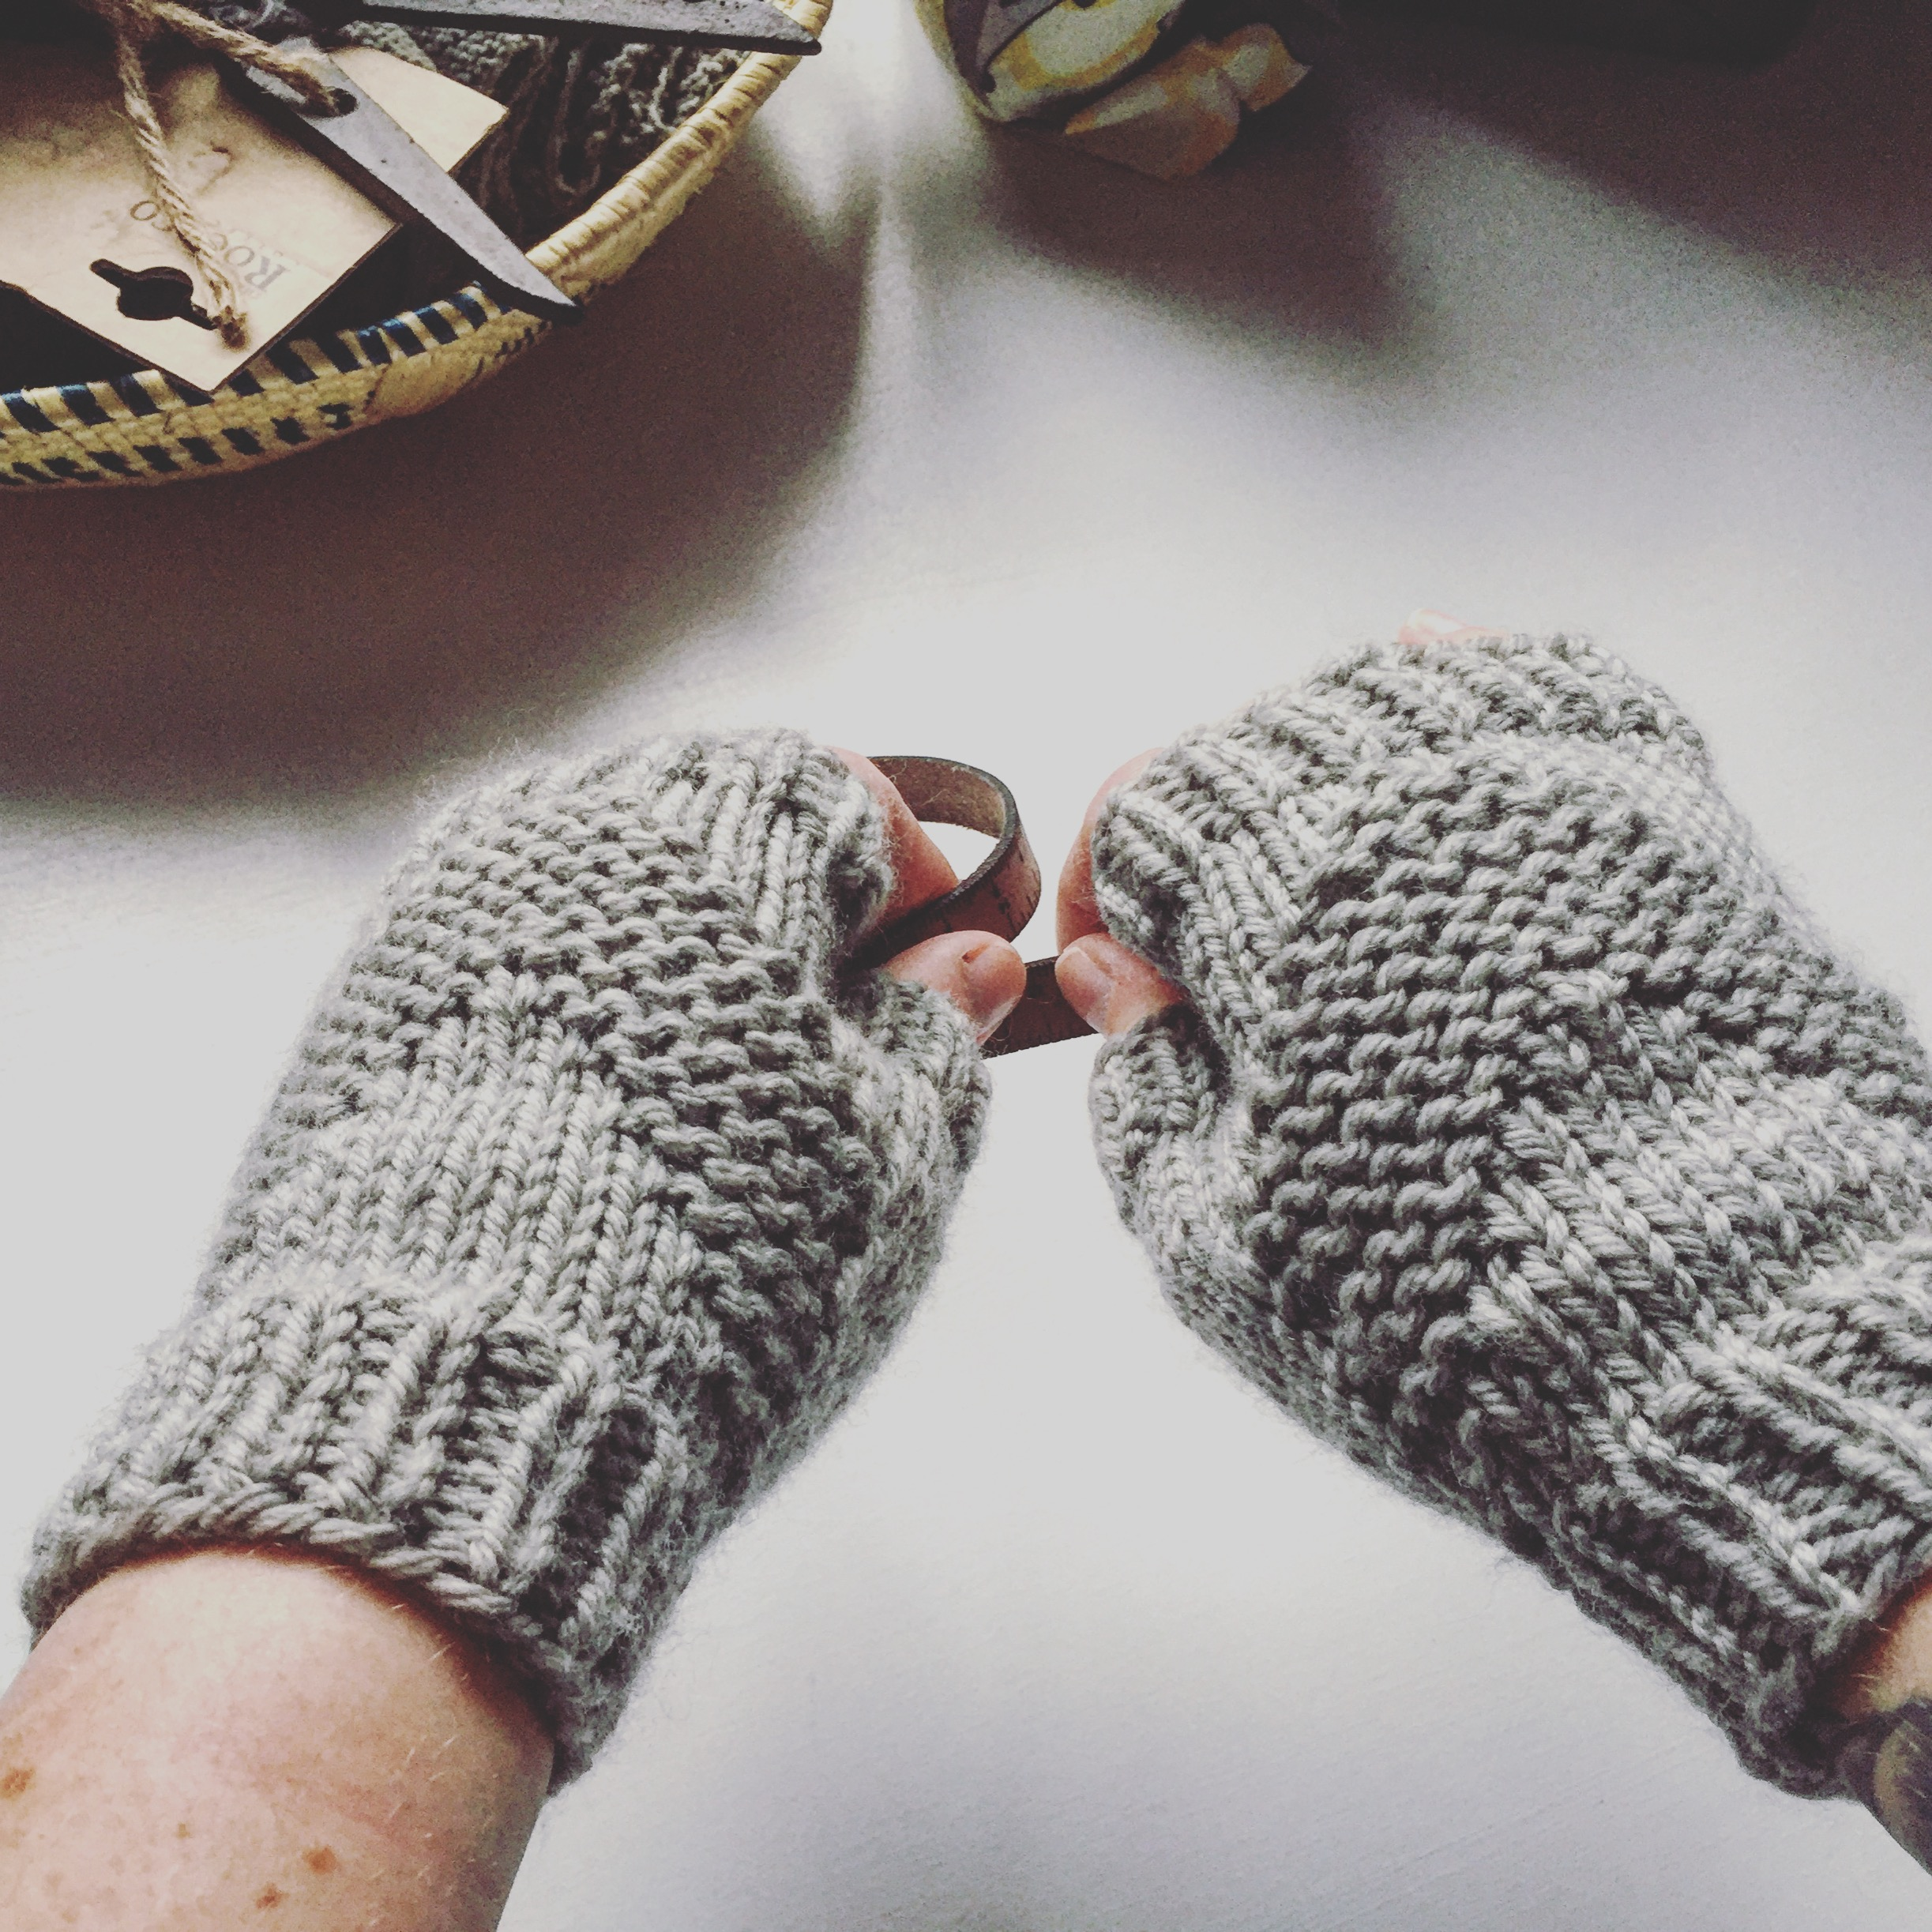 North Country Mitts by Drearenee Knits